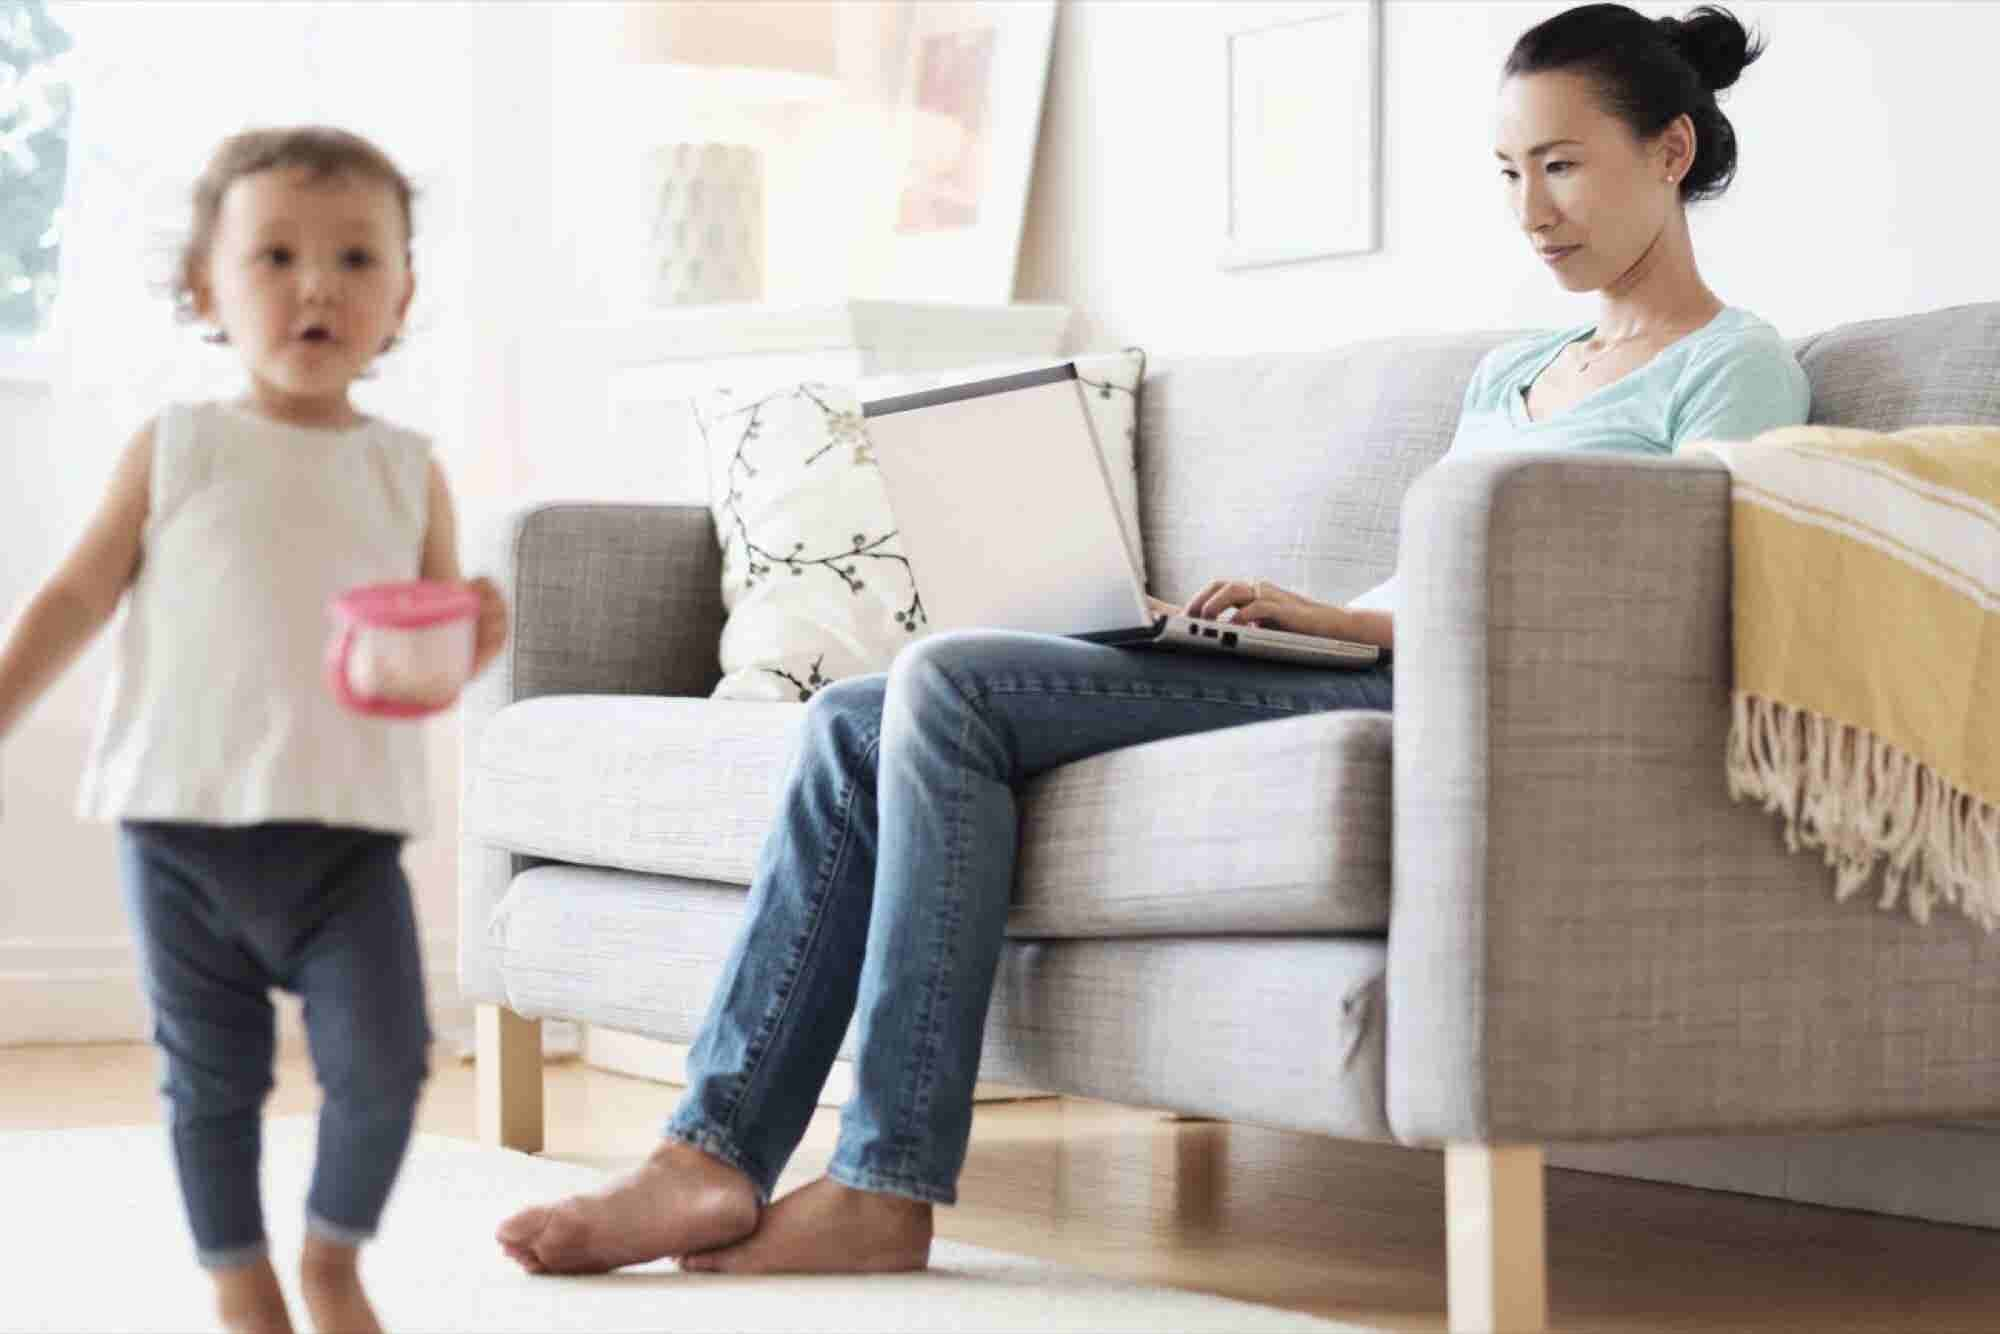 How to Make Money as a Stay-at-Home Mom